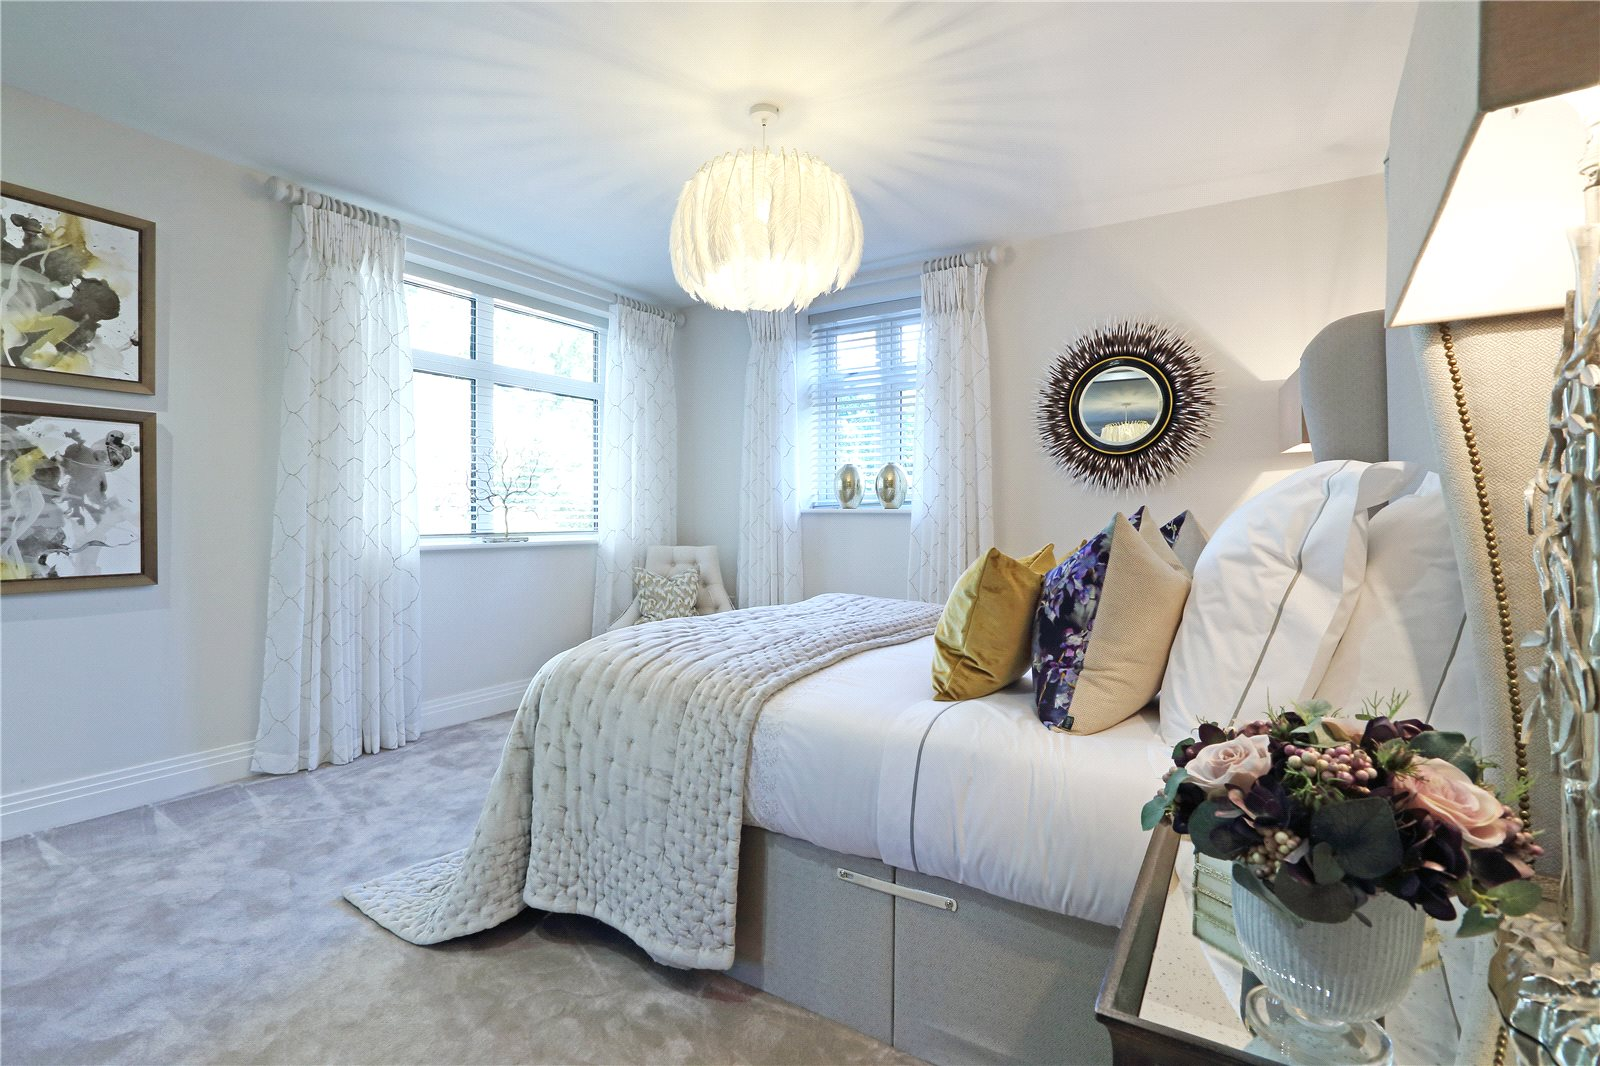 Additional photo for property listing at Scholars Place, South Park Drive, Gerrards Cross, Buckinghsmahire, SL9 Engeland